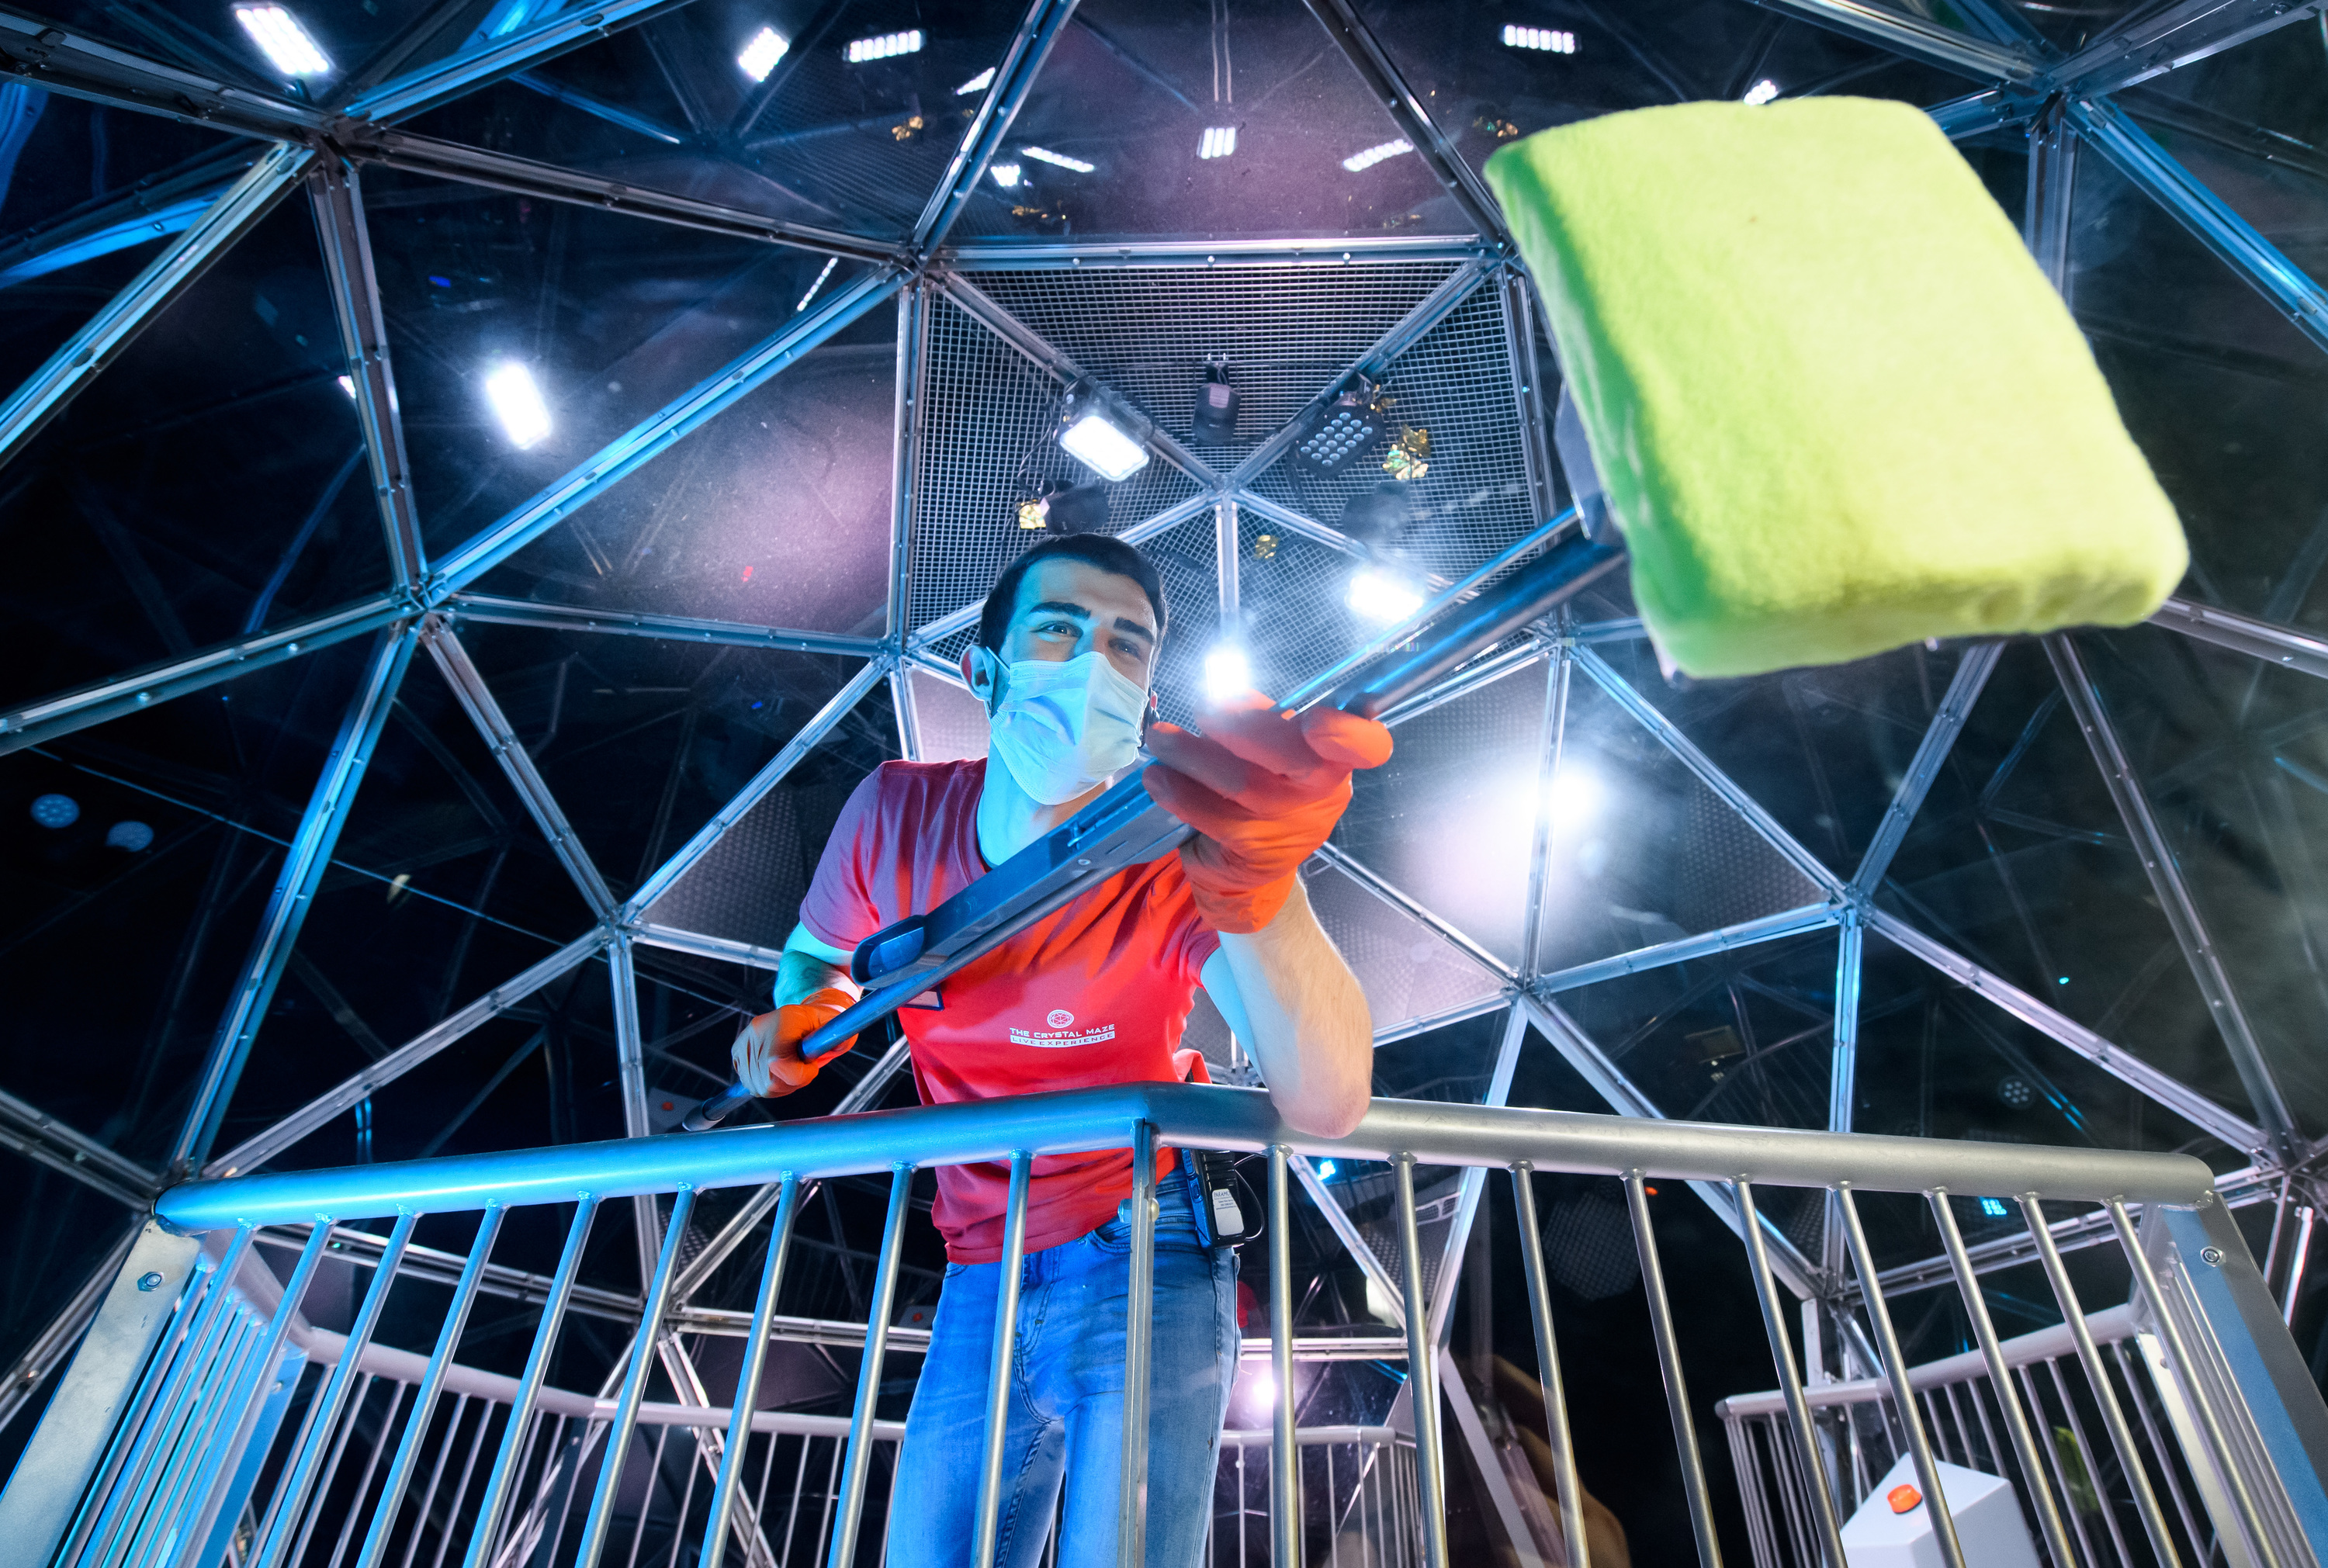 Photograph: Courtesy The Crystal Maze LIVE Experience